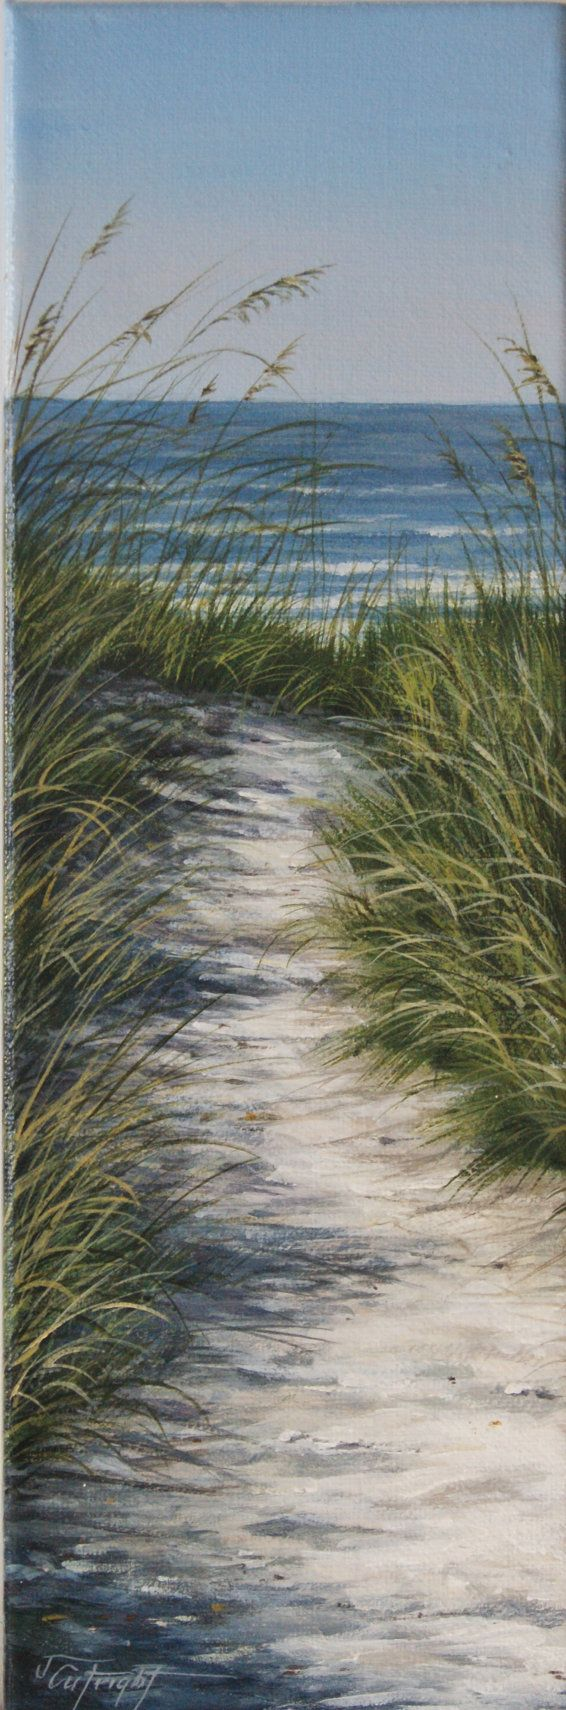 Fine Art Original Acrylic Painting of Beach Scene